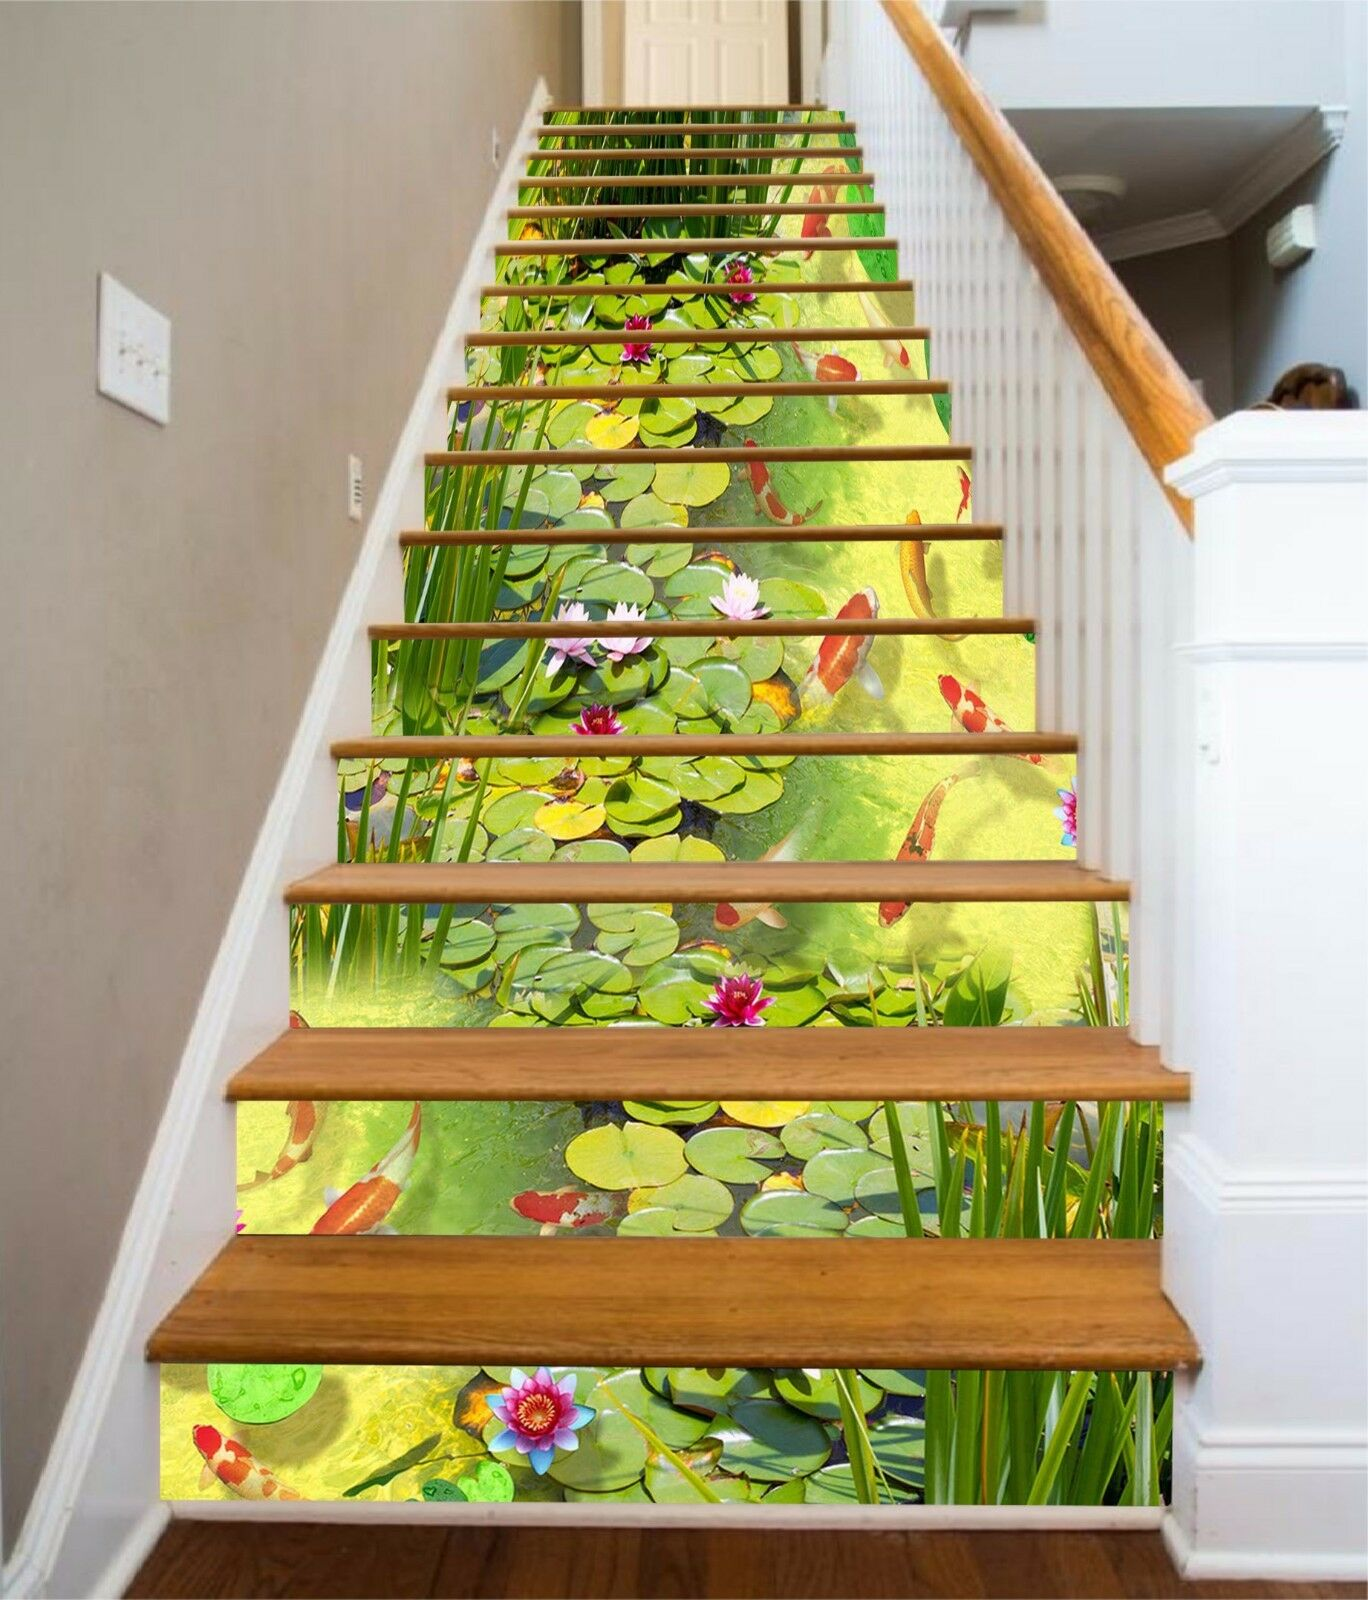 3D Fish Pond 965 Stair Risers Decoration Photo Mural Vinyl Decal Wallpaper AU